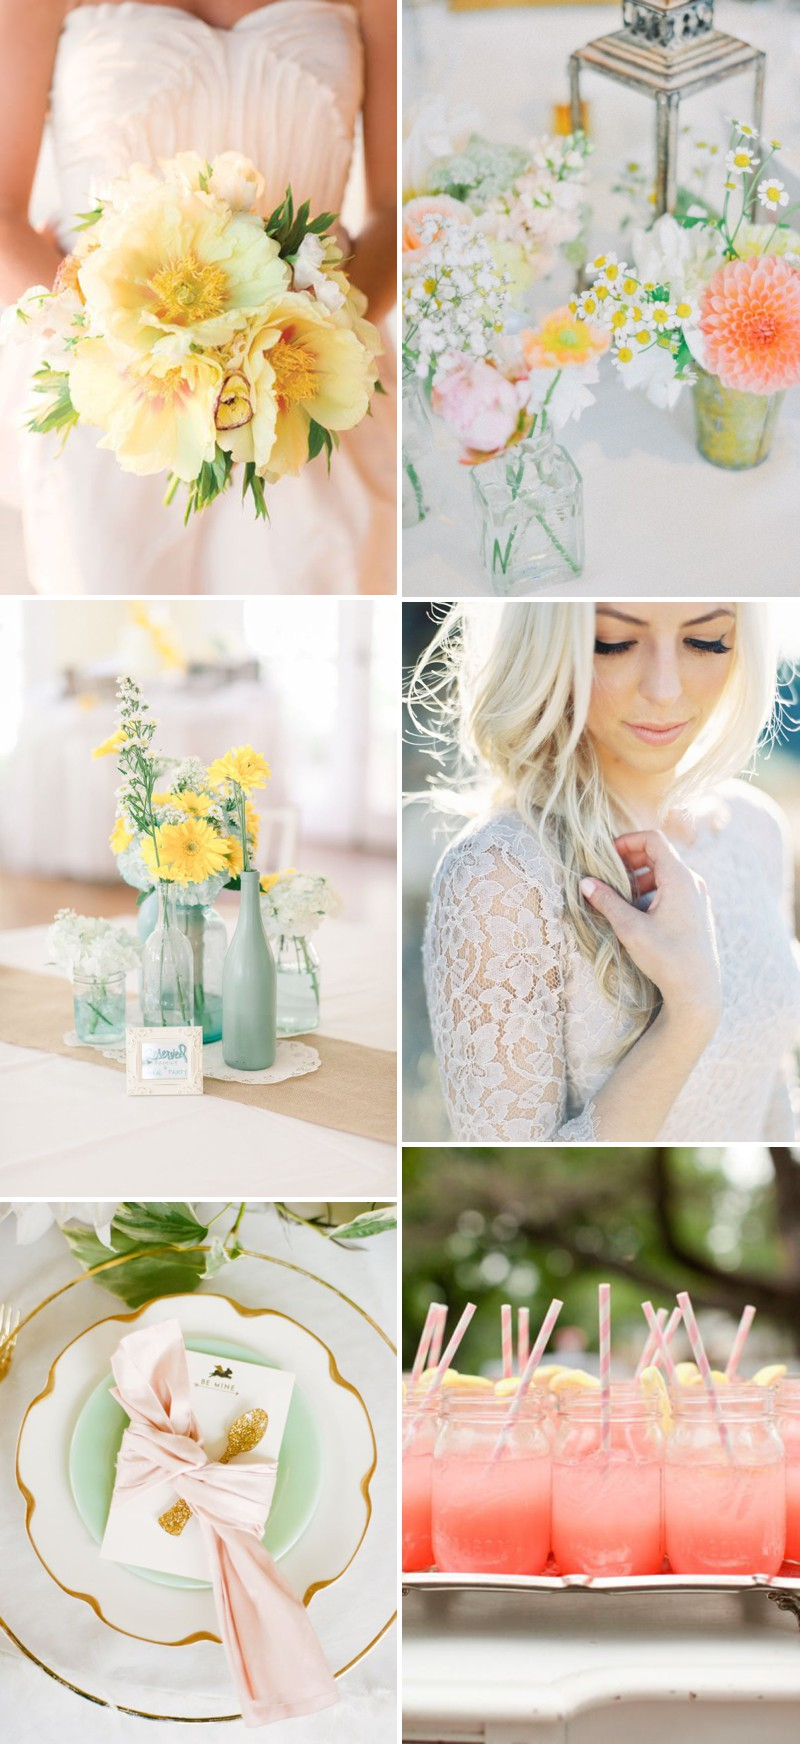 Rock My Wedding Announces The Winner Of Their Spring Pinterest Competition. 0001 Announcing....our Spring Pinterest Competition Winner.